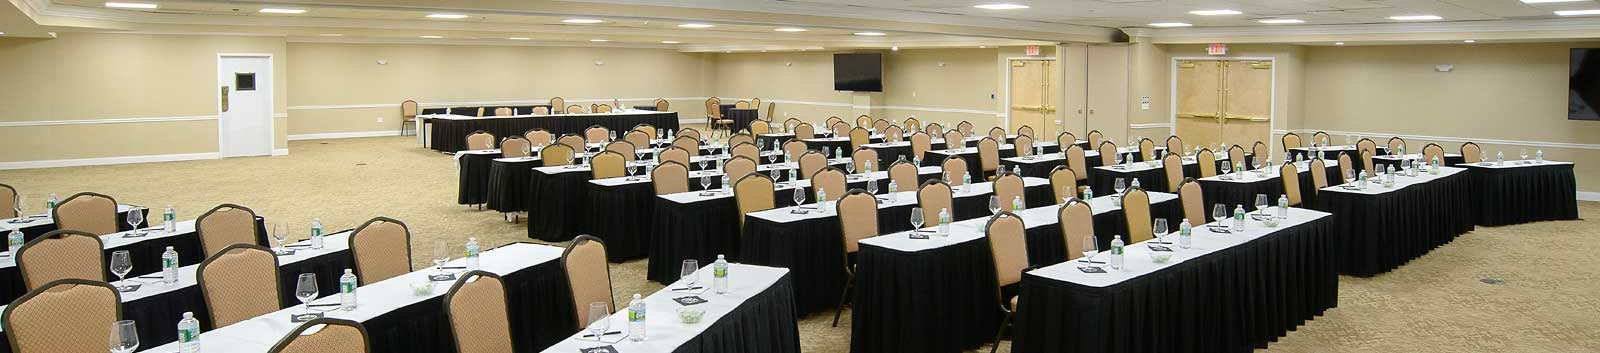 meeting space rental near atlantic city nj and conference center from claridge a radisson hotel